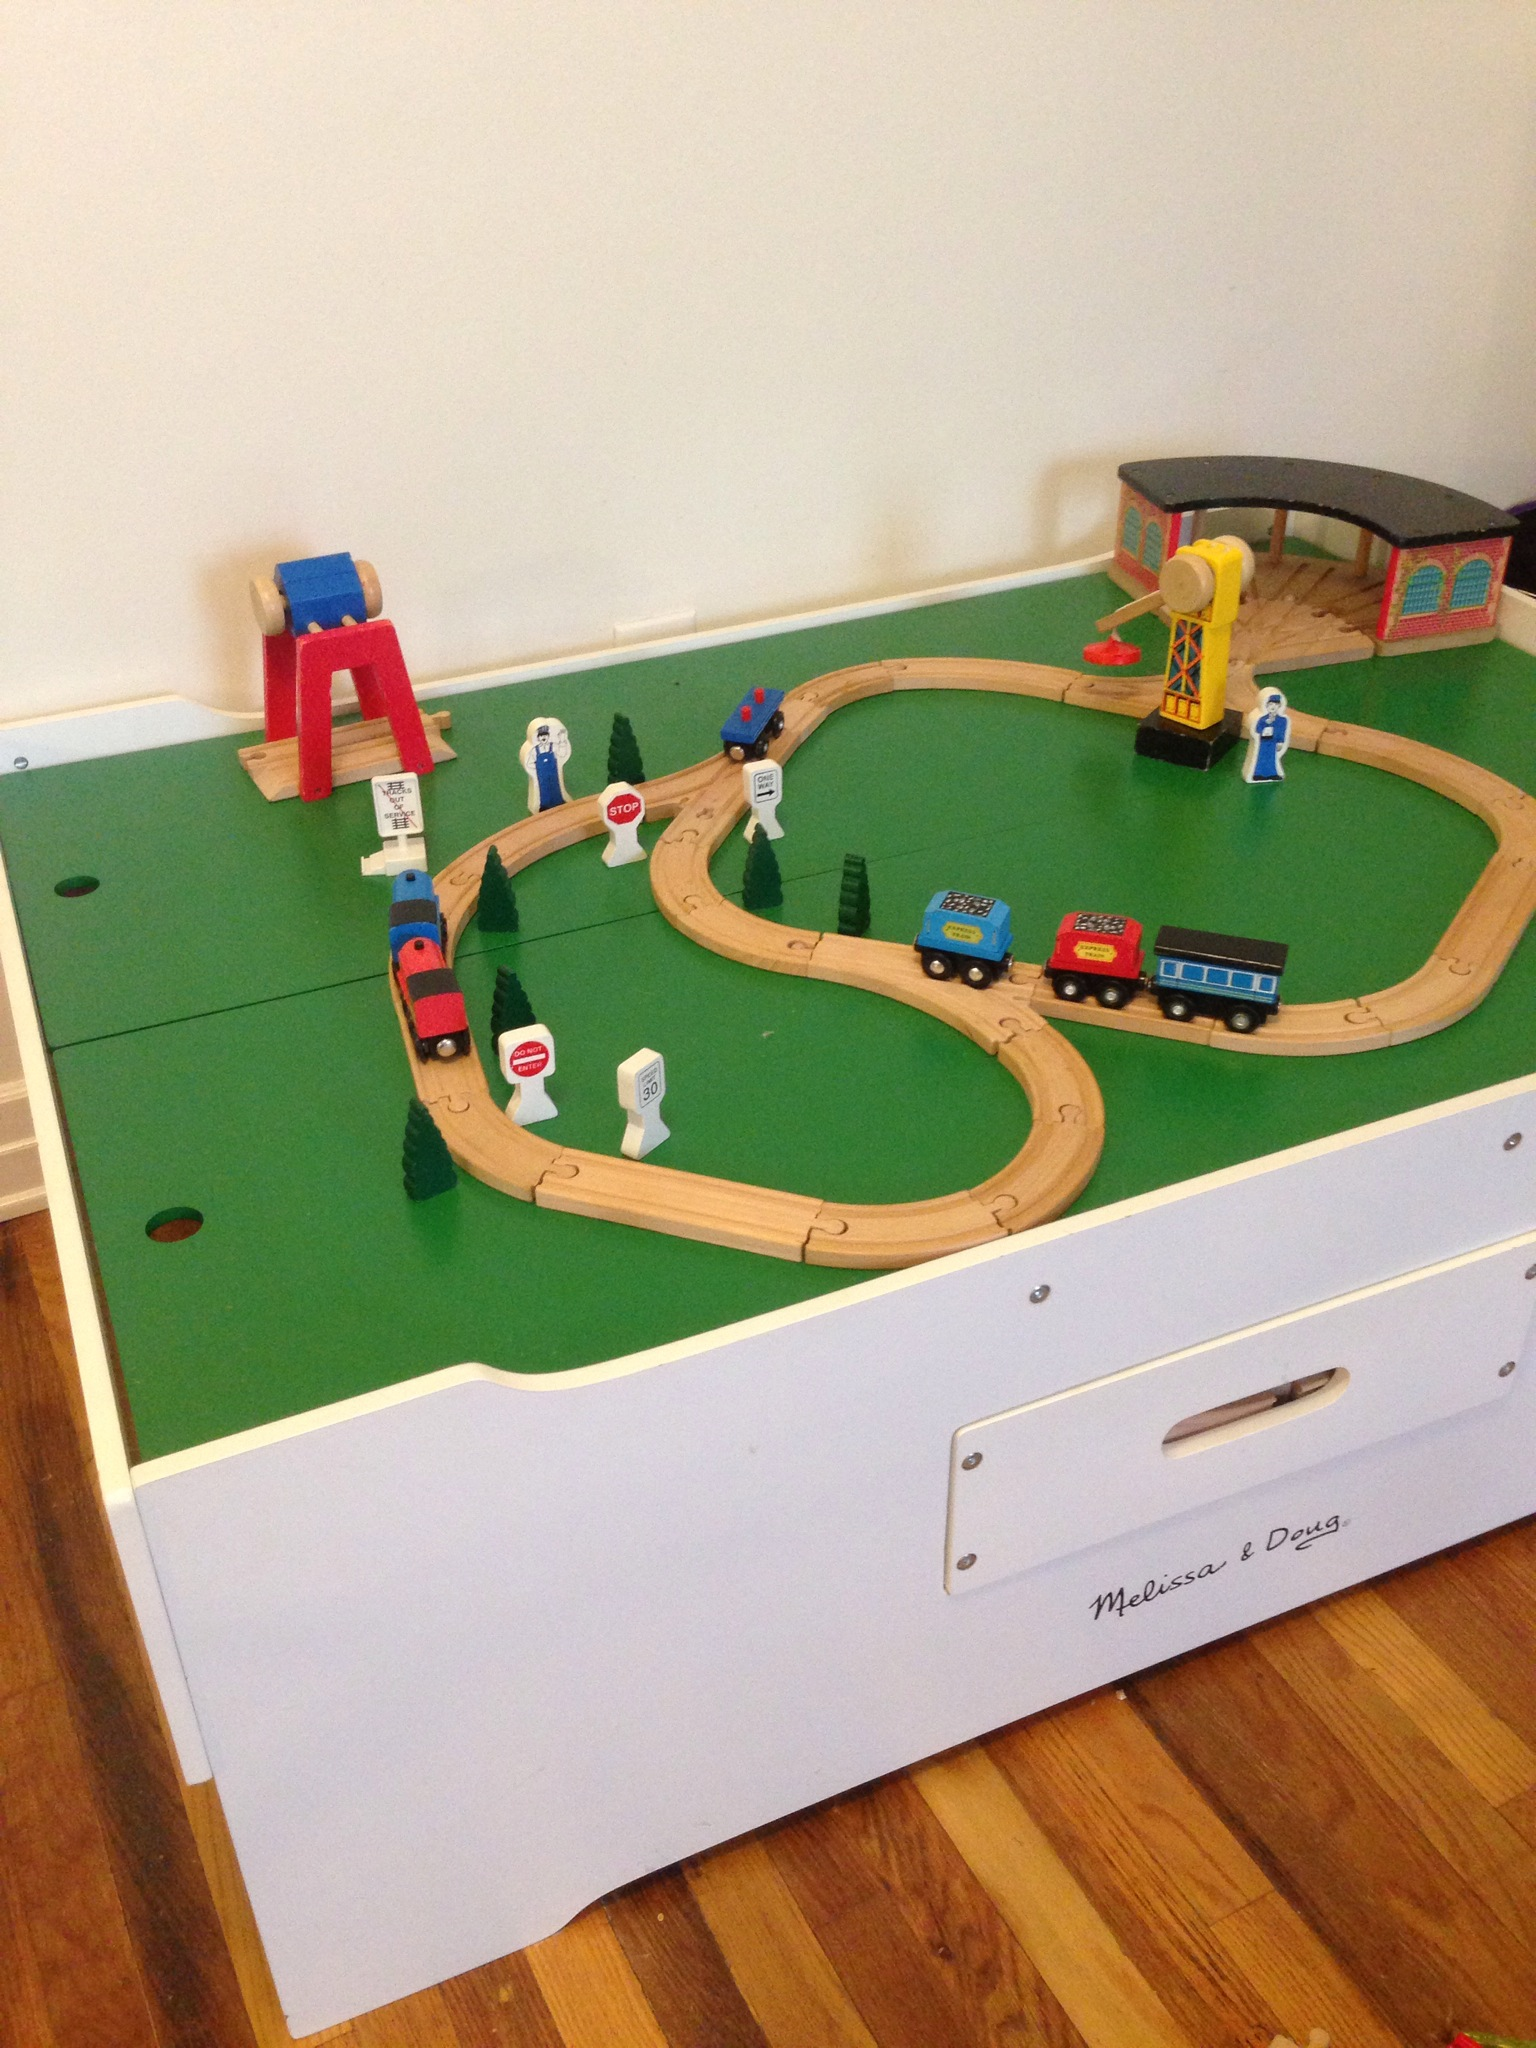 Melissa And Doug Train Table Review | Baby Gizmo